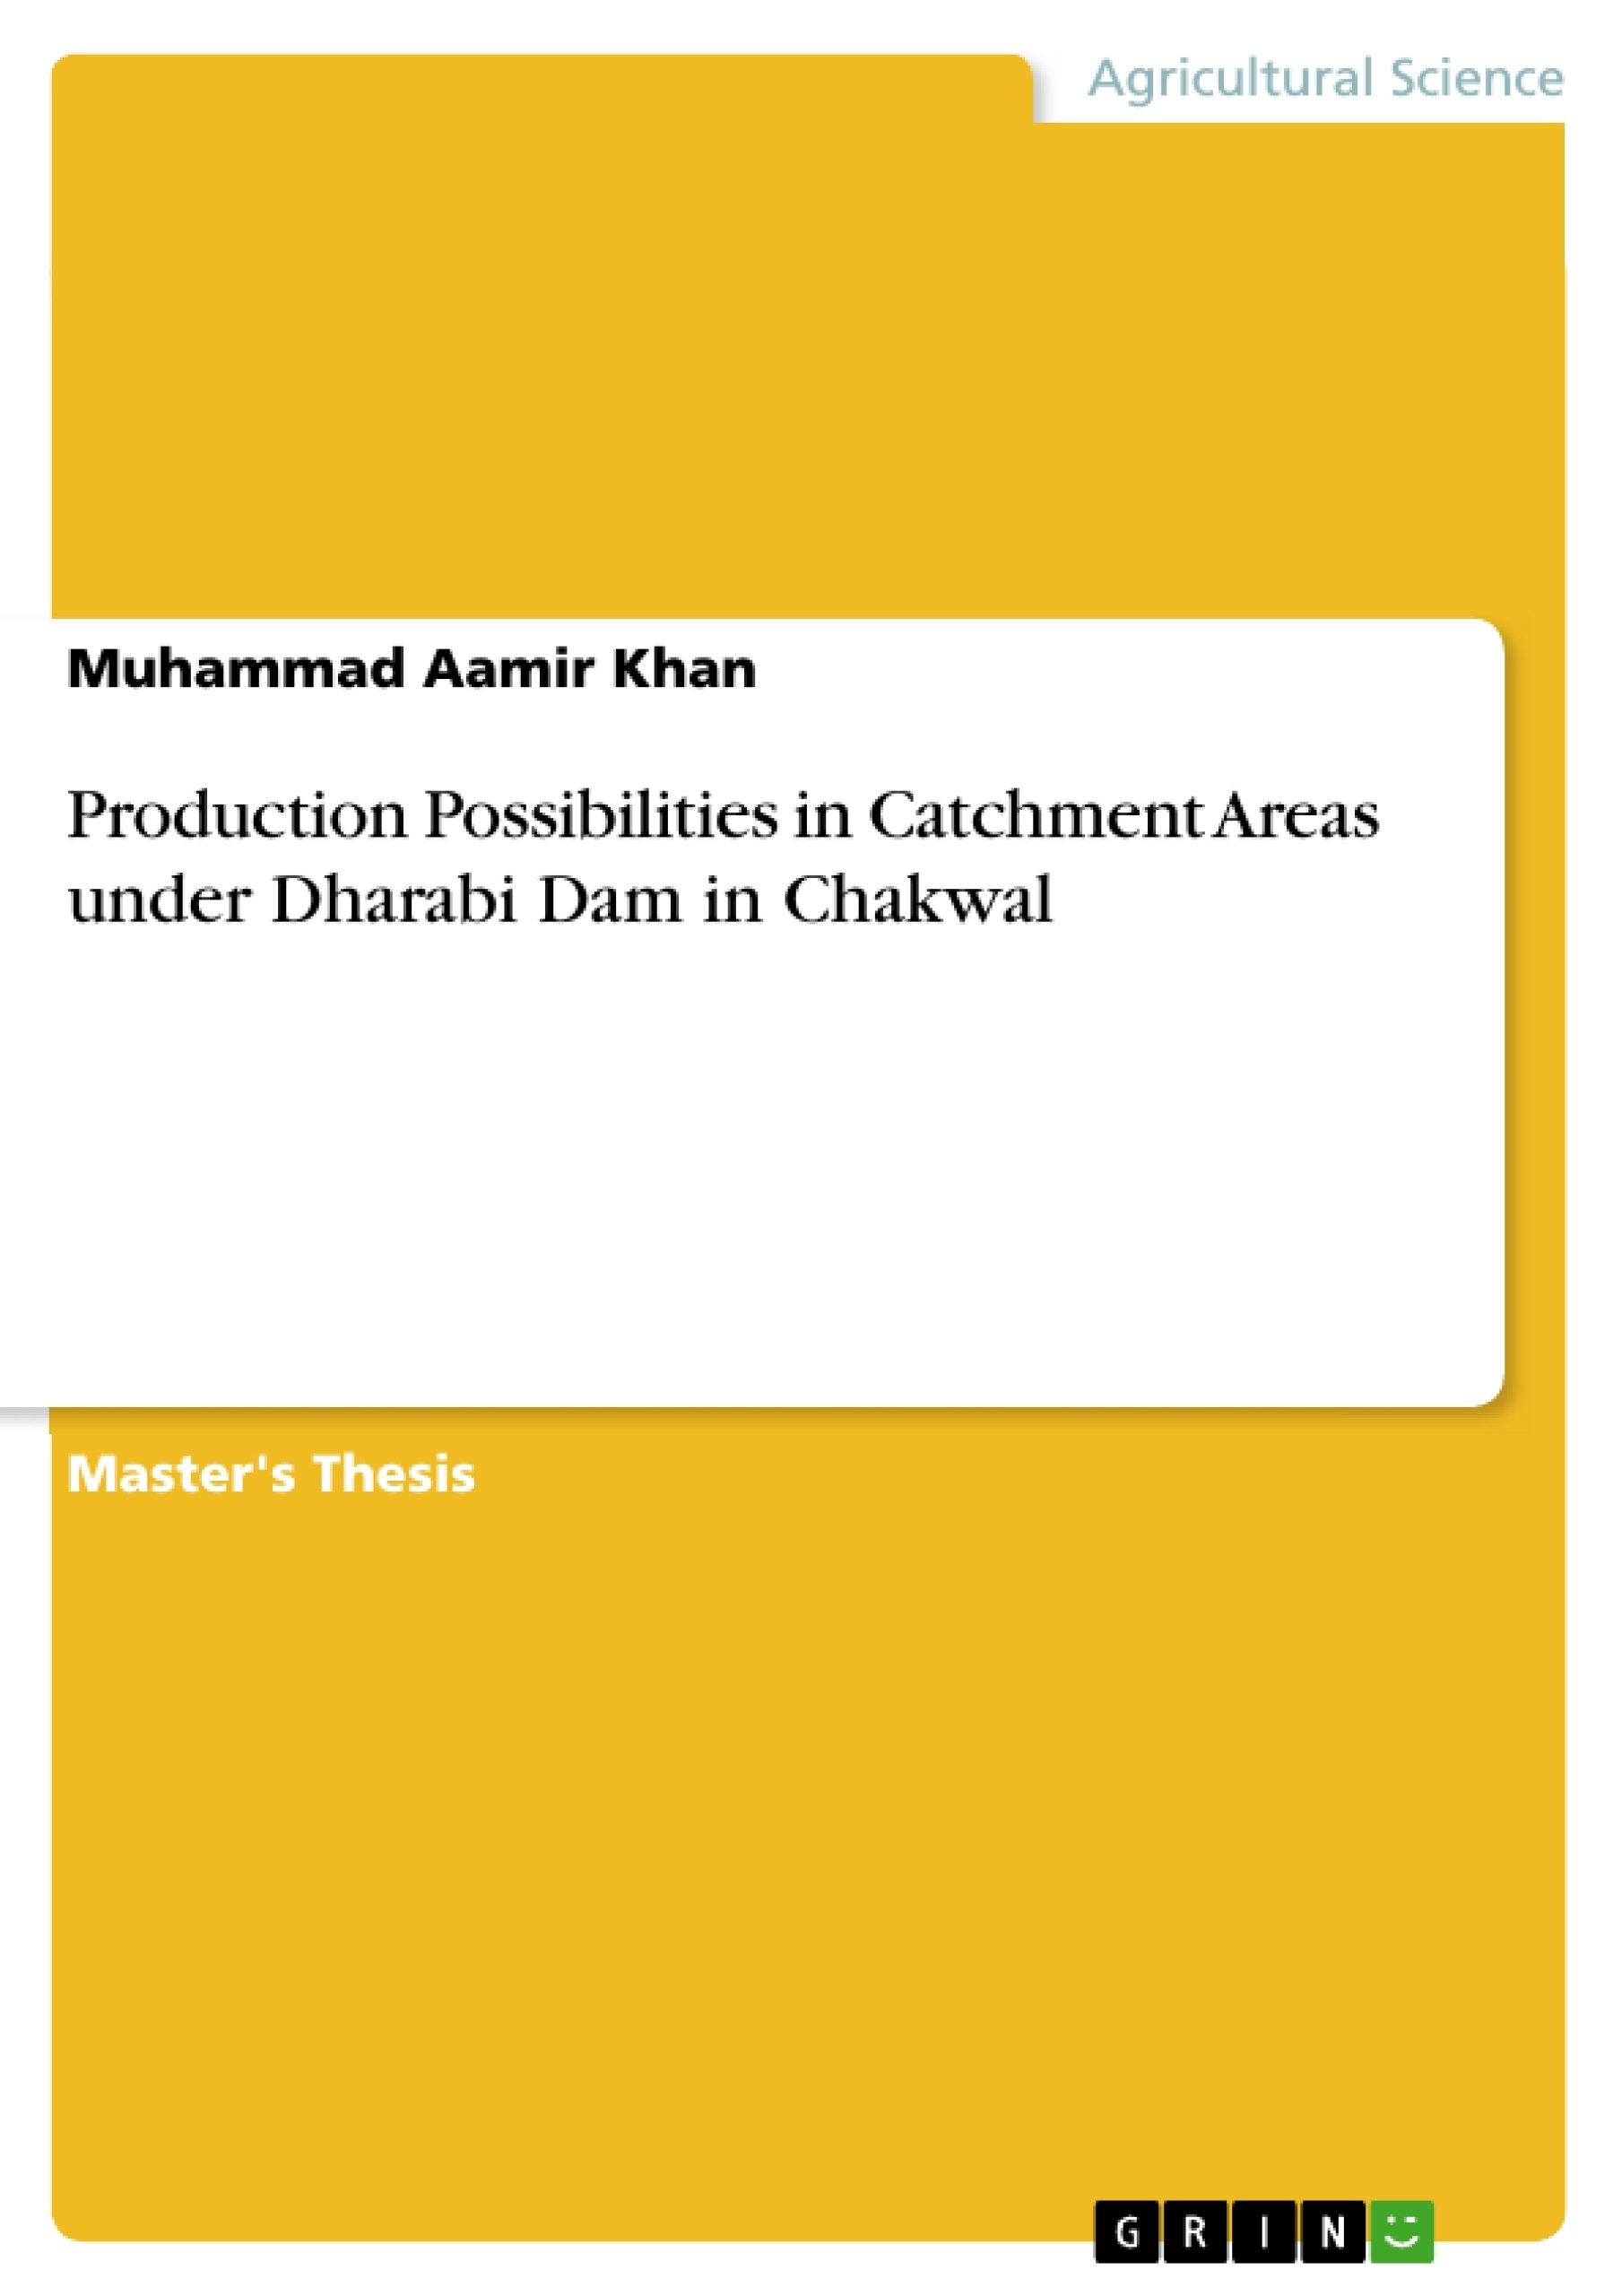 Title: Production Possibilities in Catchment Areas under Dharabi Dam in Chakwal